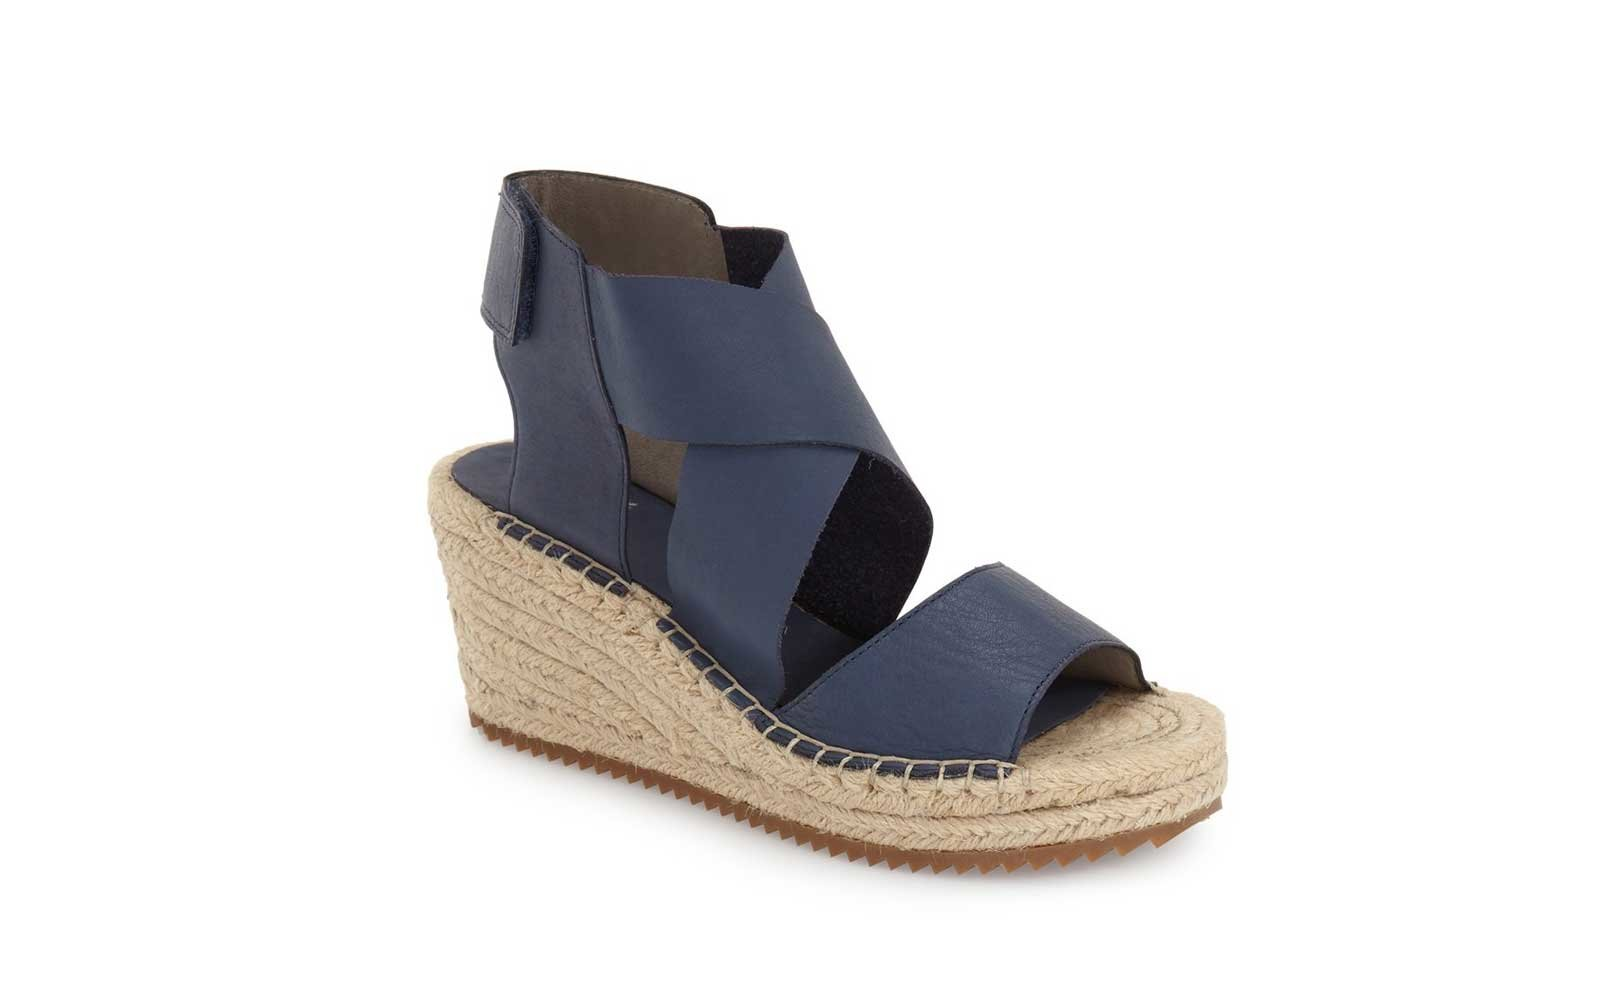 733a73788a36 Walkable Wedges  Eileen Fisher  Willow  Espadrille Wedge Sandal. eileen  fisher womens comfortable walking sandals. Courtesy of Nordstrom